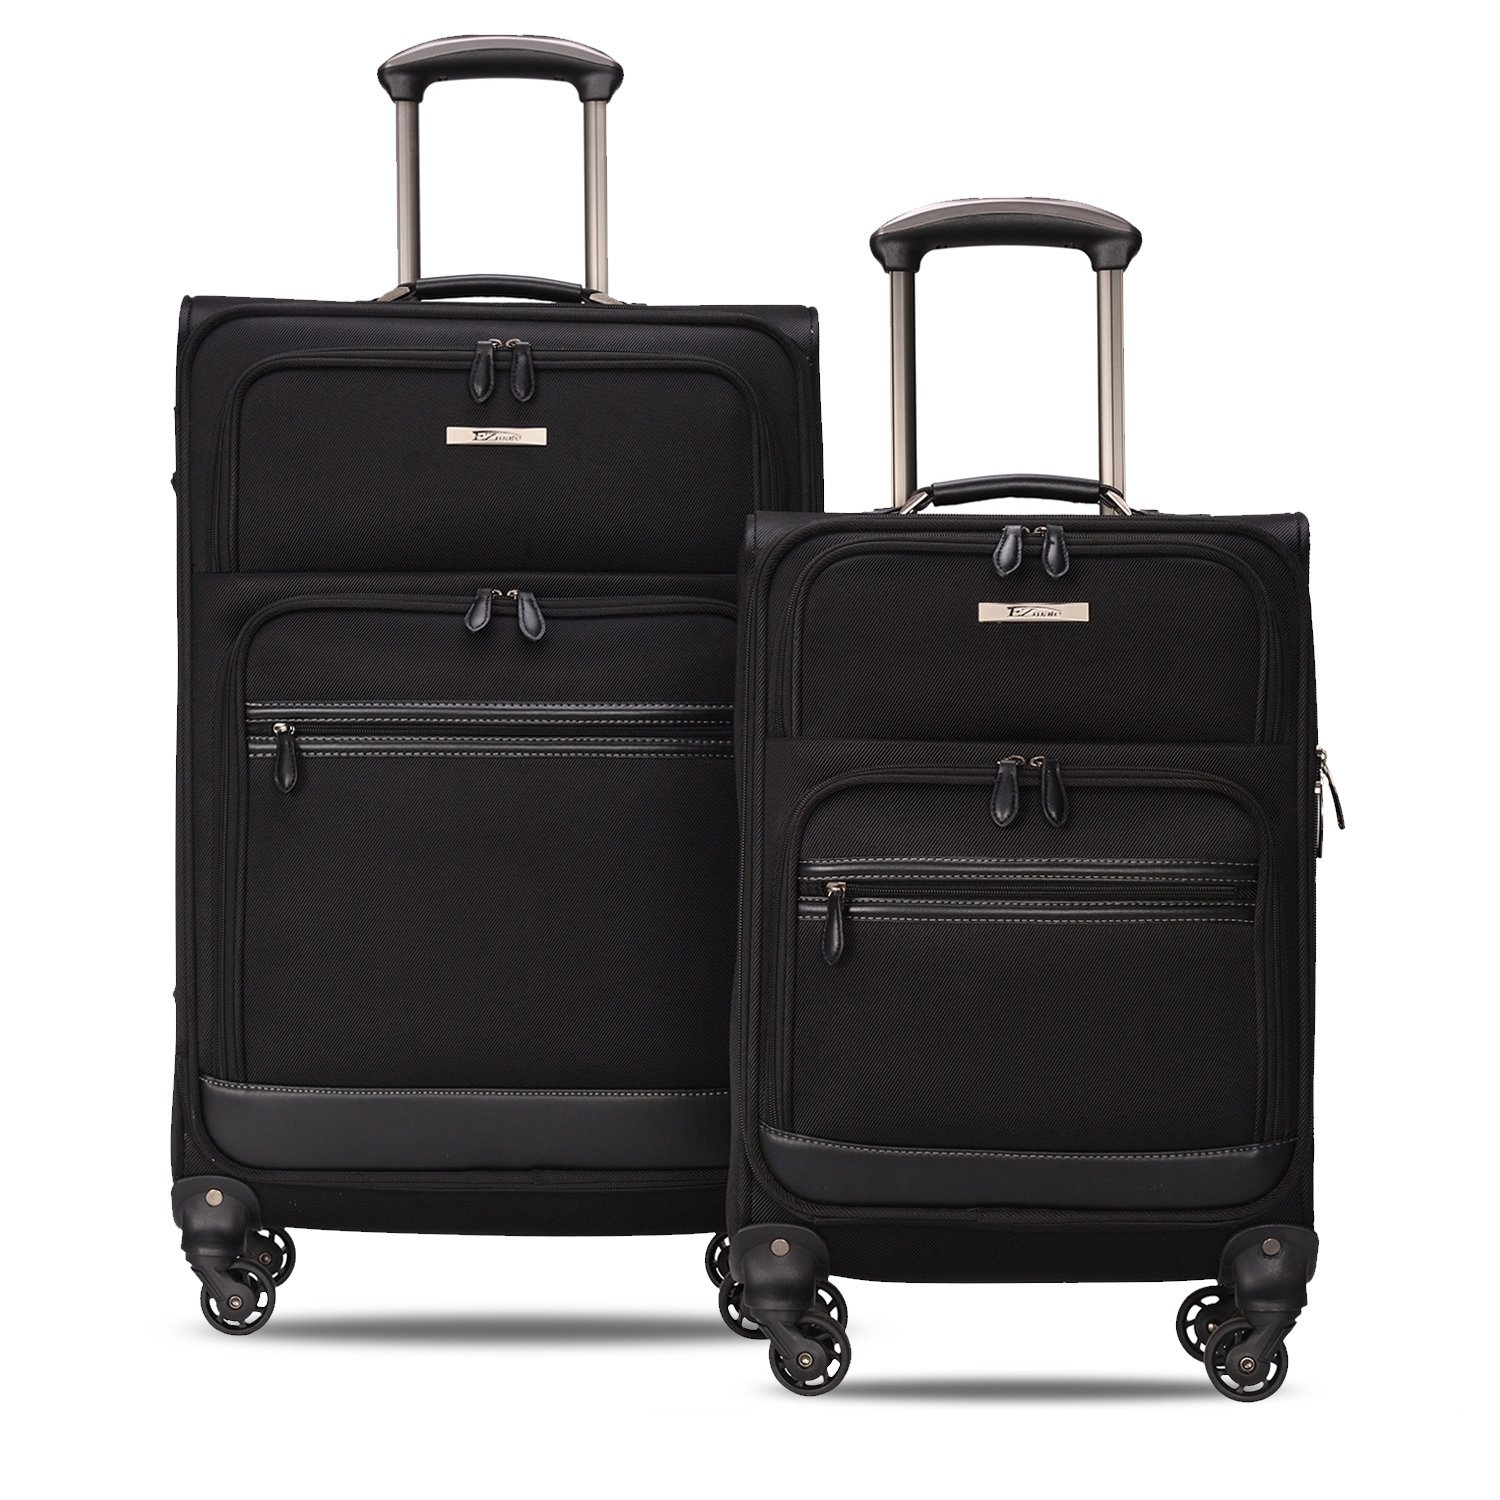 luggage Sets Spinner Wheels -For Business,Travel, Students,Men,Women, Heavy - Duty (18'', 24'')